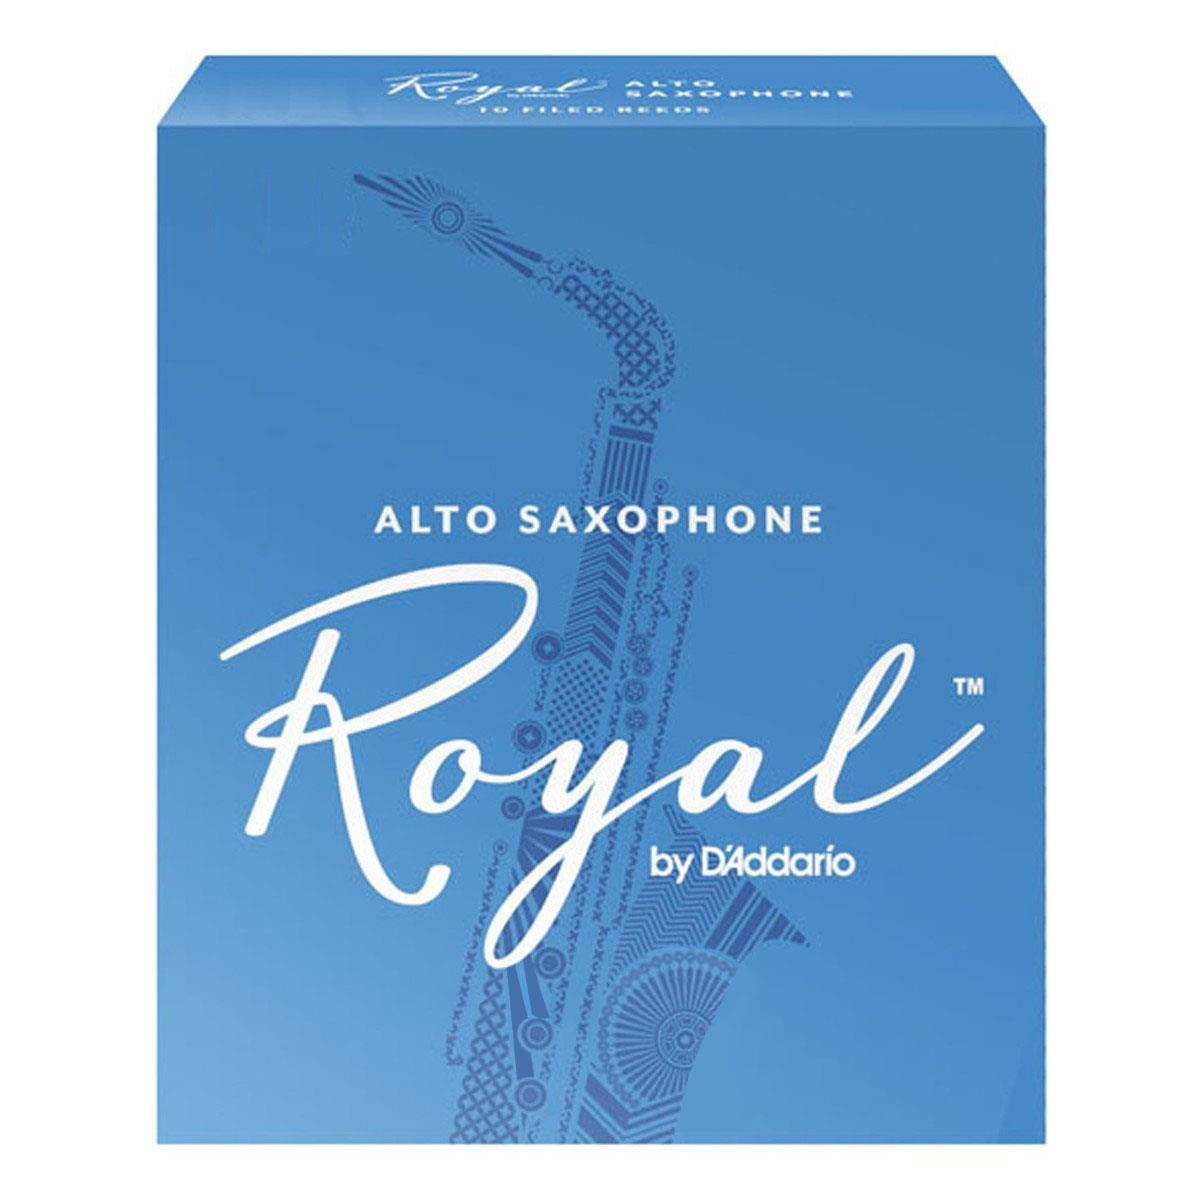 Image of D'Addario Woodwind Royal RJB1030 Alto Sax Reeds Strength 3 10-pack 0046716532978